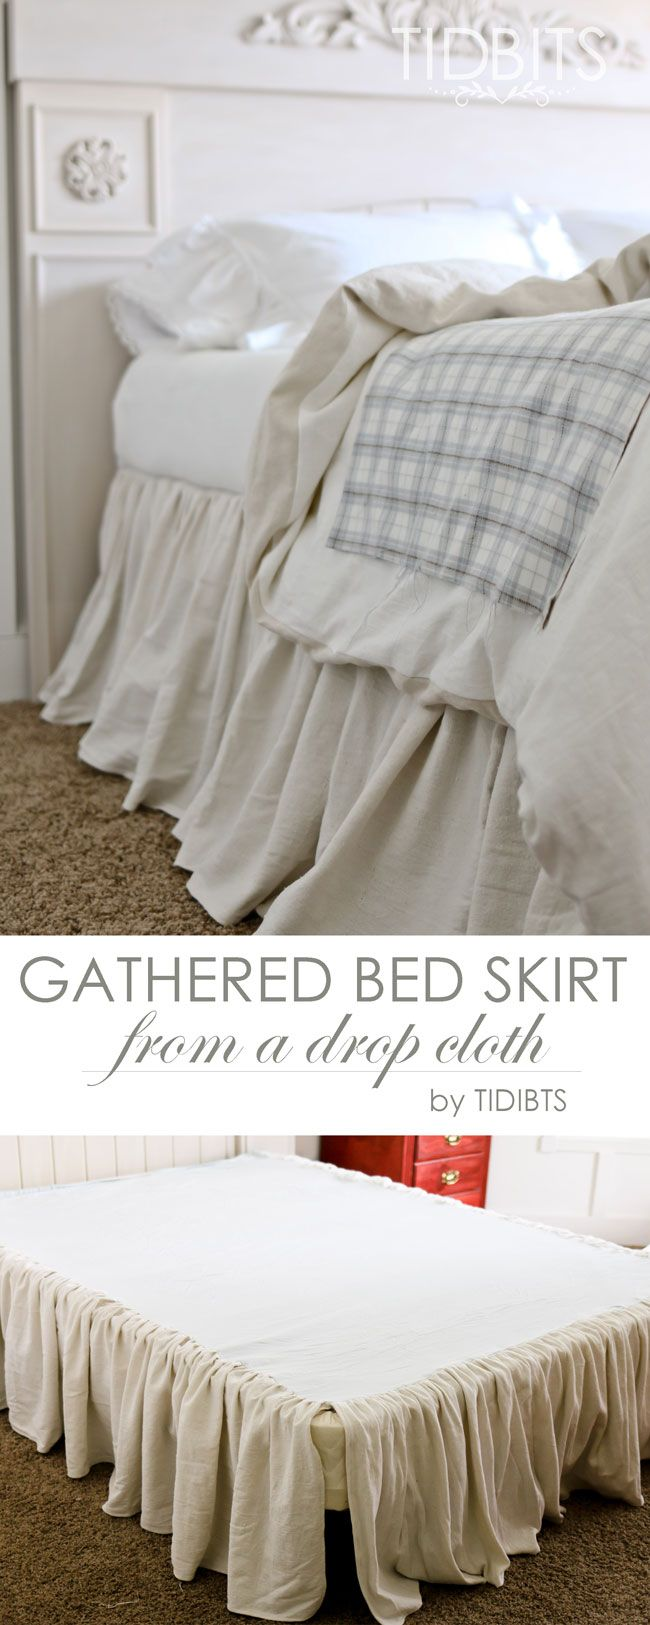 DIY Gathered Bed skirt Bed, Drop cloth projects, Decor